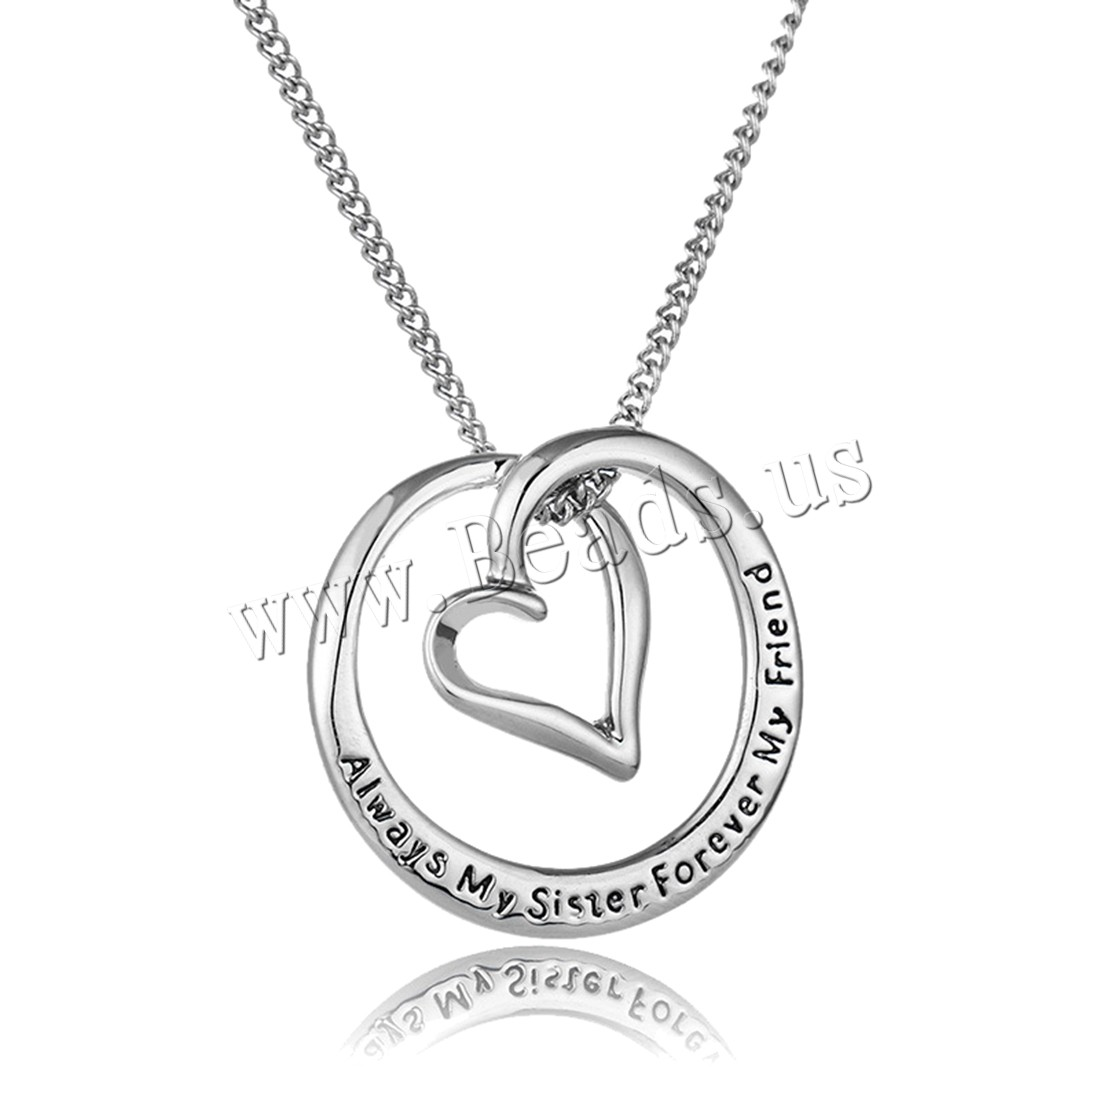 Buy Zinc Alloy Jewelry Necklace 1.9lnch extender chain platinum color plated twist oval chain & letter pattern & woman & enamel nickel lead & cadmium free 25x25mm Sold Per Approx 17.7 Inch Strand